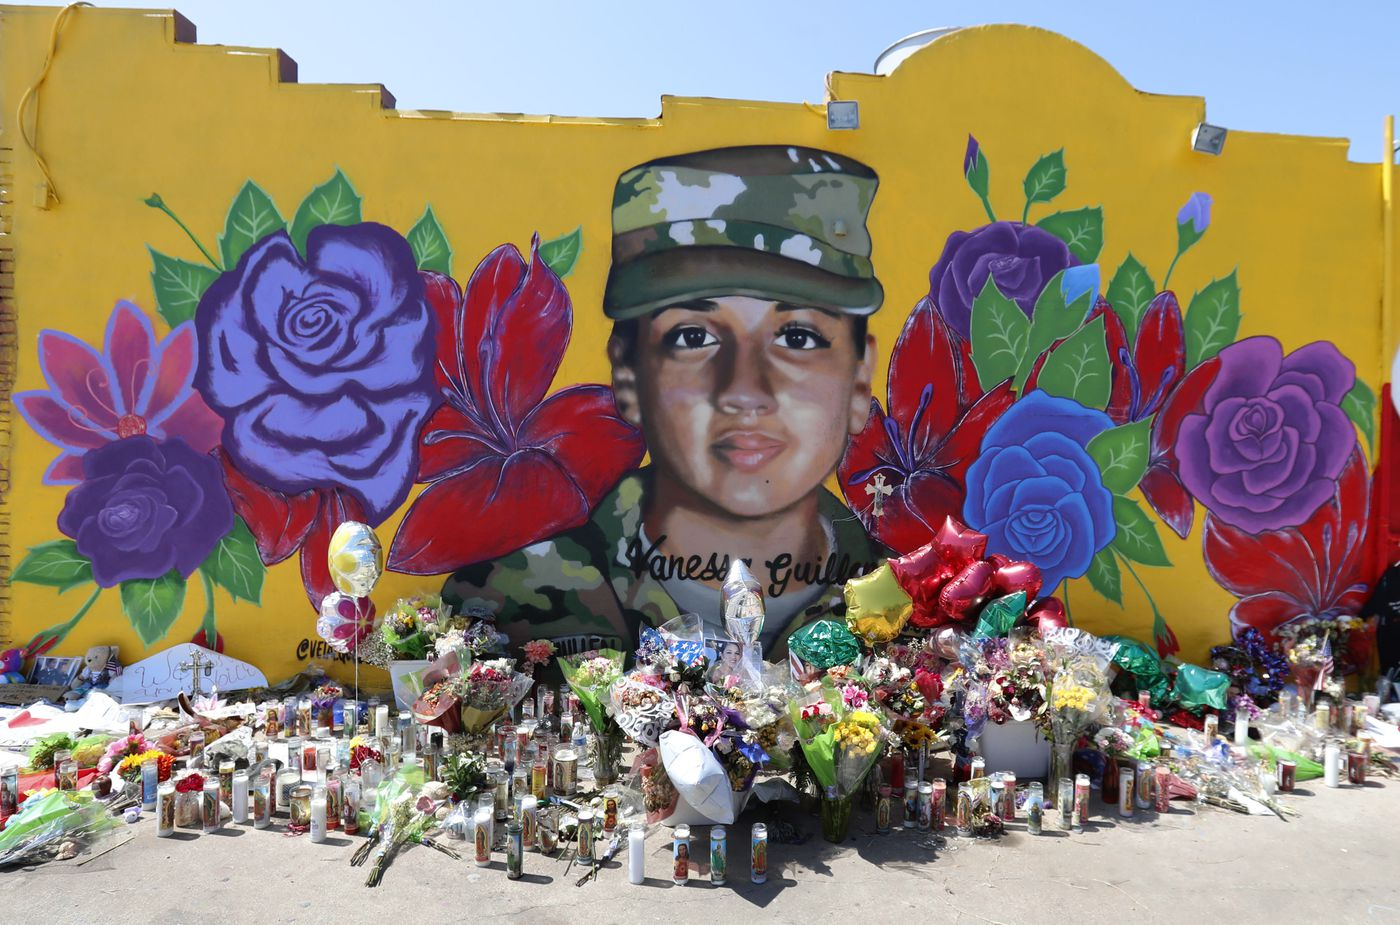 Offerings sit in front of a mural of slain Army Spc. Vanessa Guillen painted on a wall in the south side of Fort Worth, Texas. U.S. Army officials say they will begin an independent review of the command climate at Fort Hood, examining claims and historical data of discrimination, harassment, and assault.